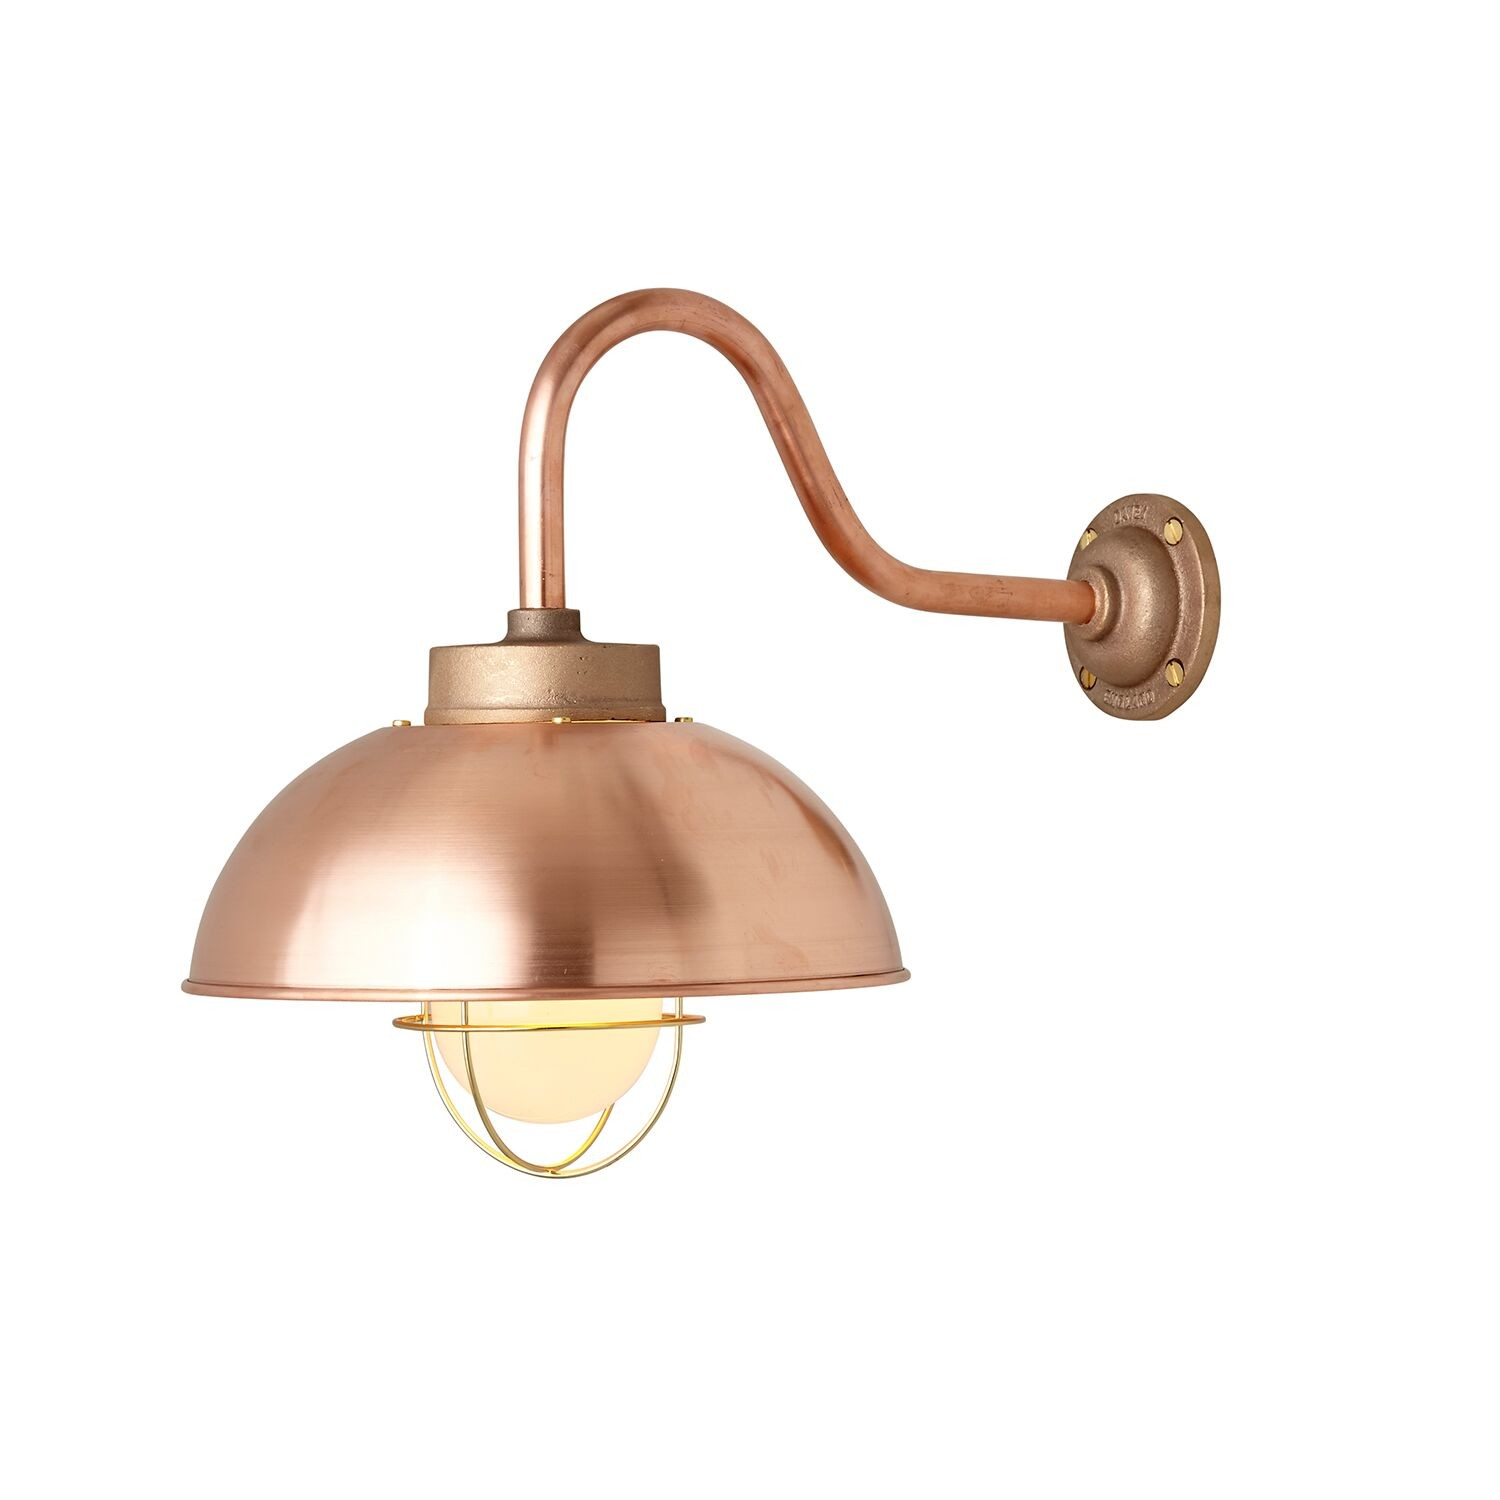 Shipyard Wall Light 7222 Copper, Frosted glass